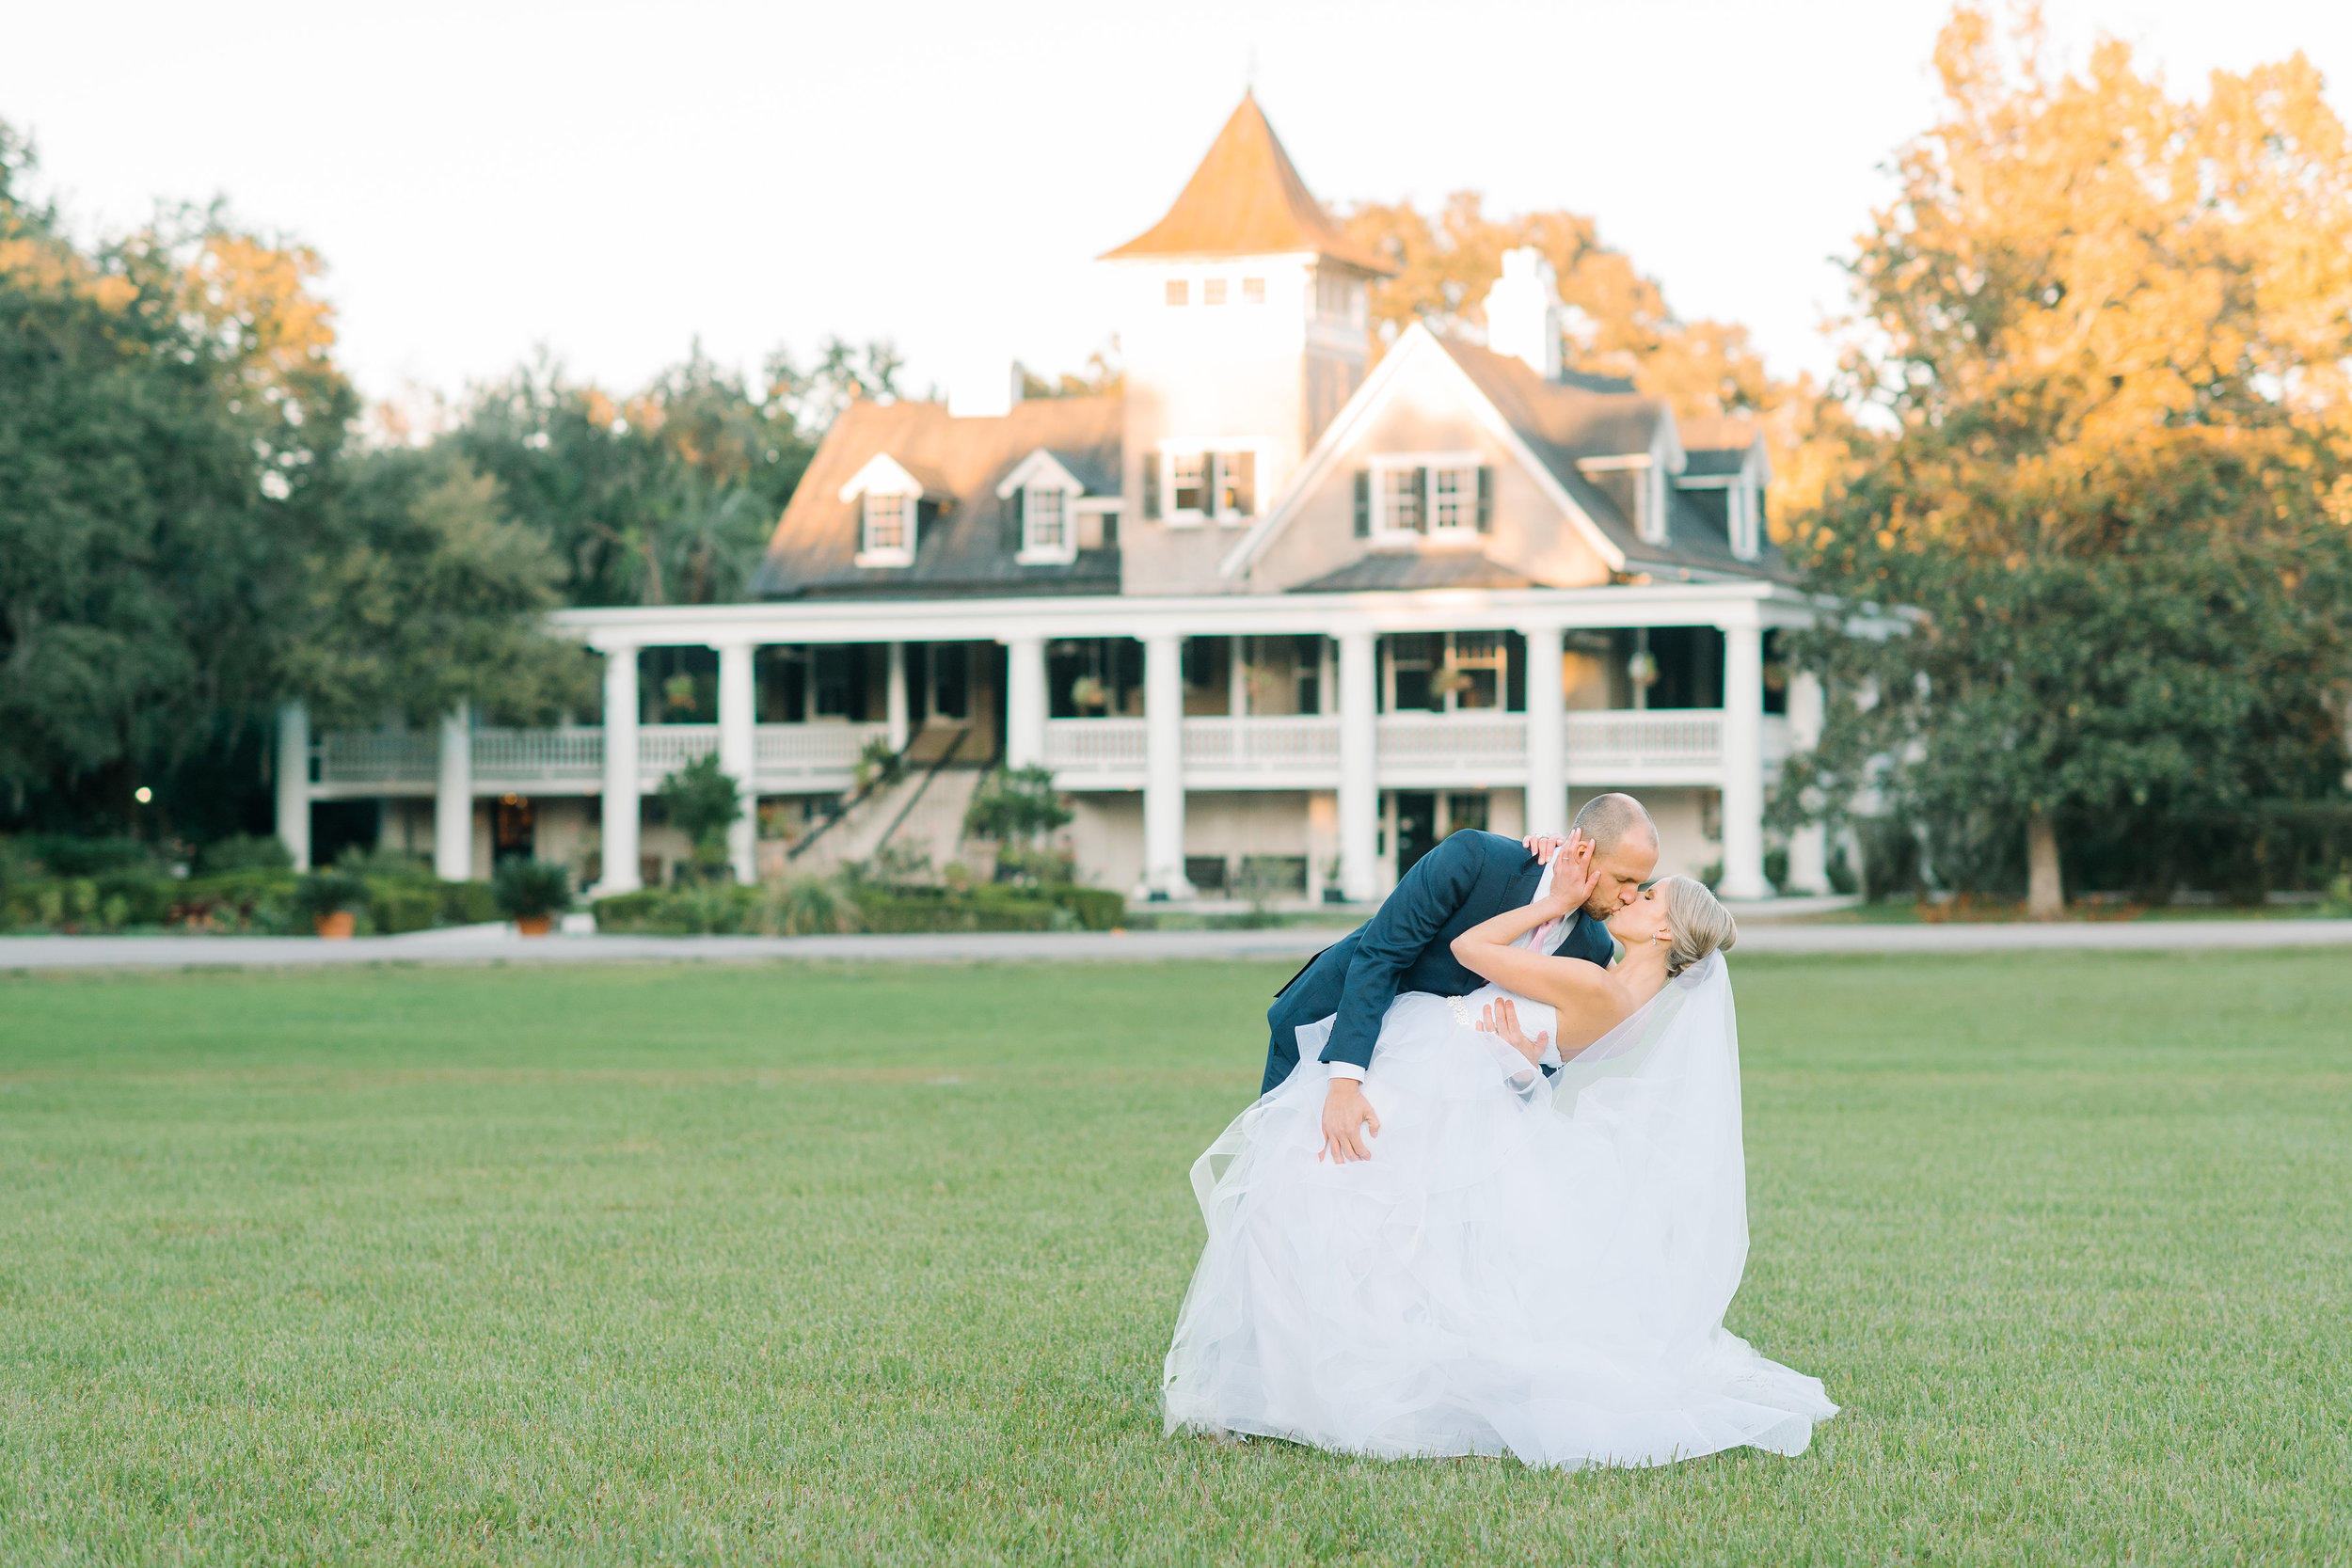 Kimberly+Alex-MagnoliaPlantationWedding-467.jpg